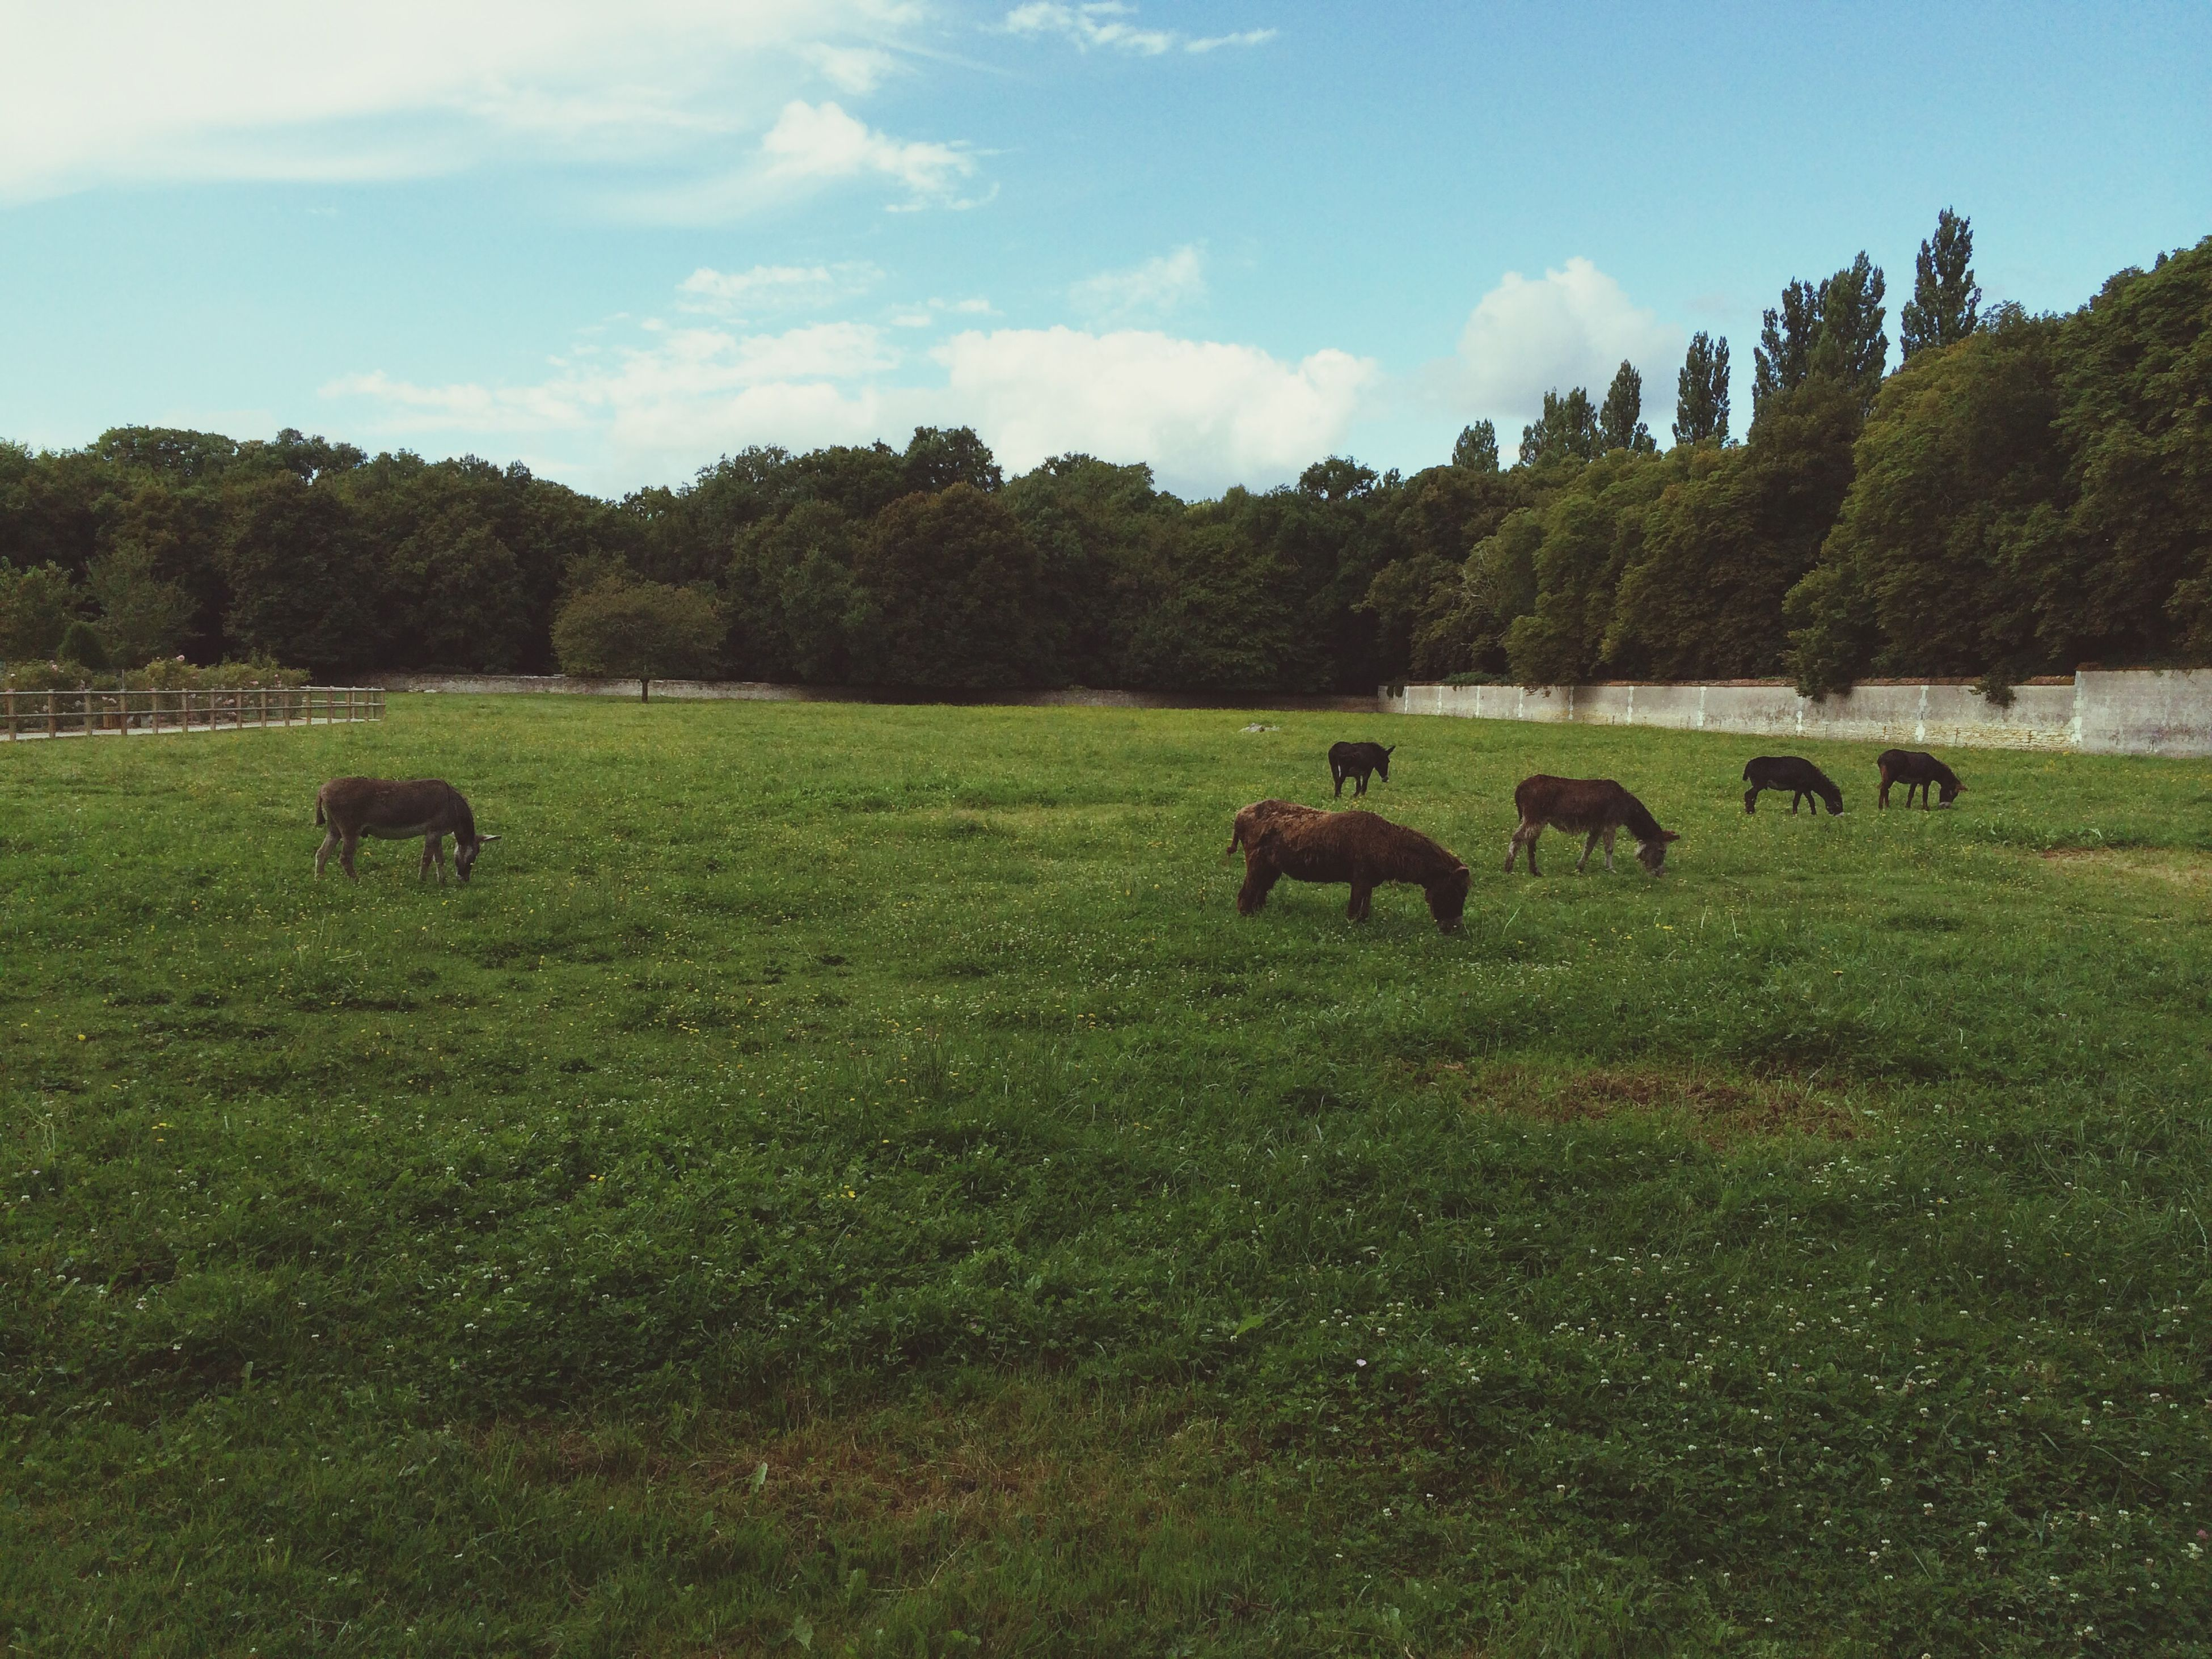 animal themes, grass, field, tree, grazing, mammal, livestock, landscape, grassy, domestic animals, green color, sky, wildlife, nature, animals in the wild, herbivorous, medium group of animals, pasture, tranquility